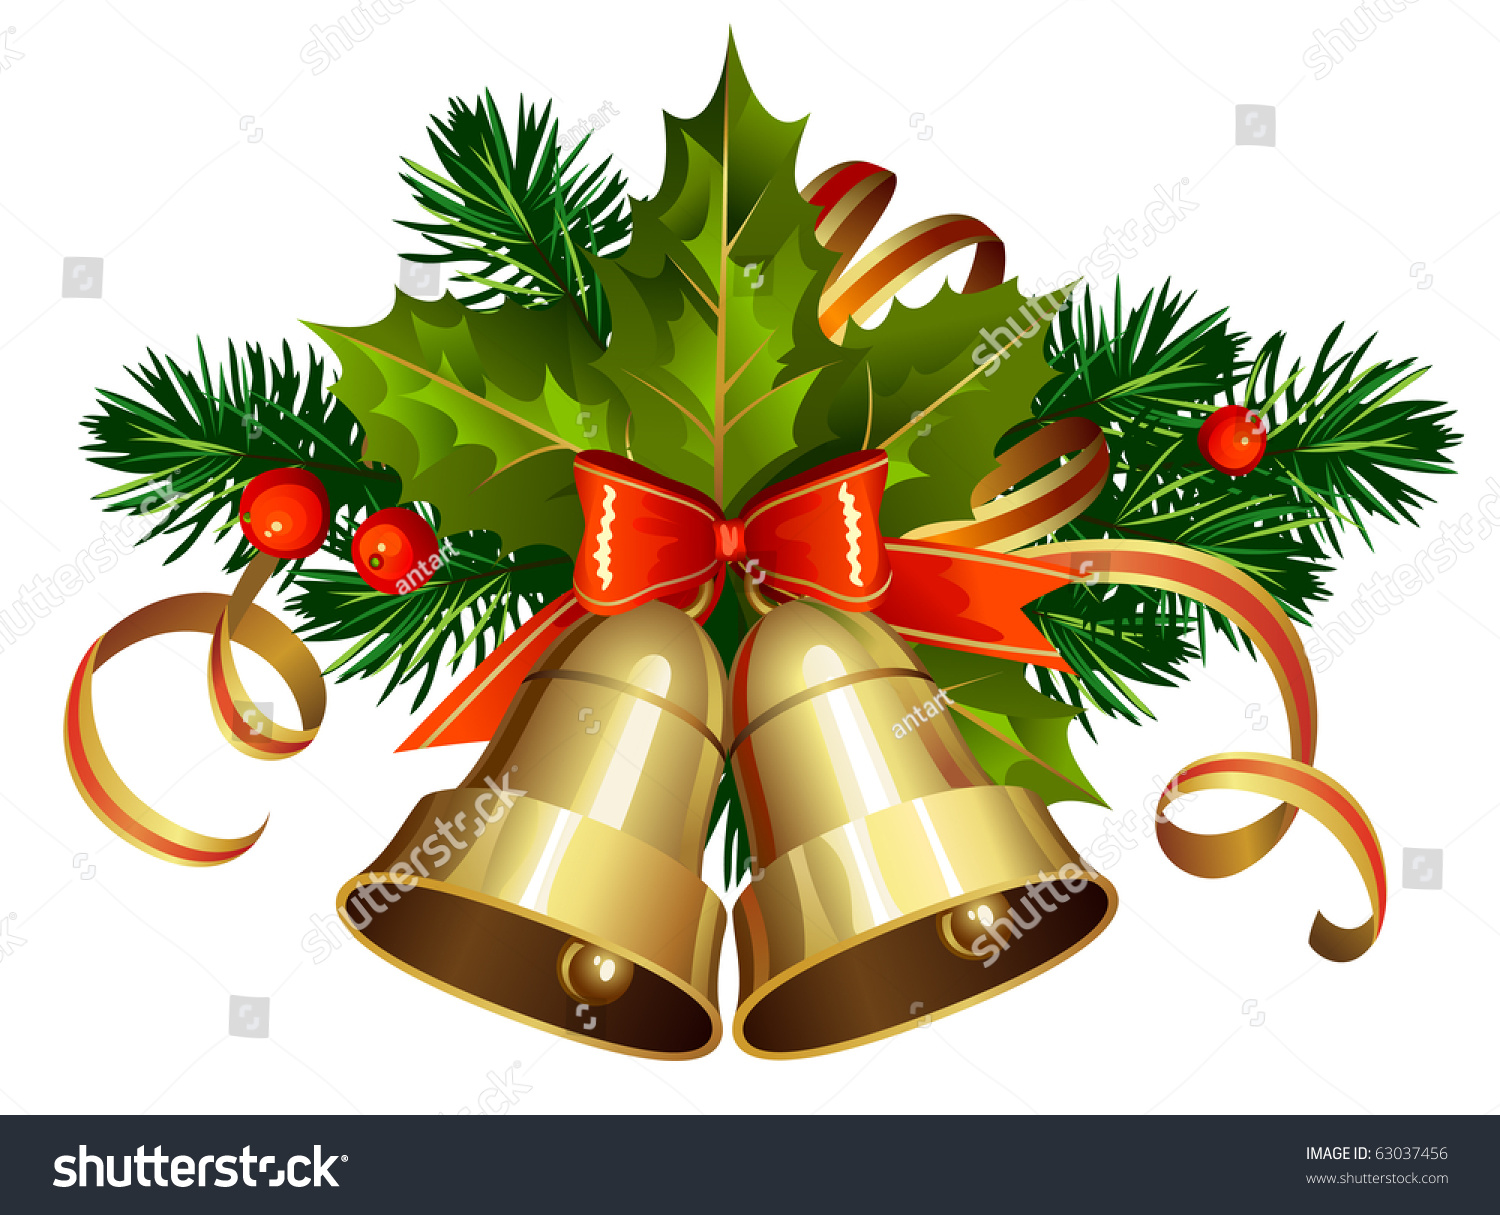 christmas decoration with evergreen trees and bells - Christmas Decoration